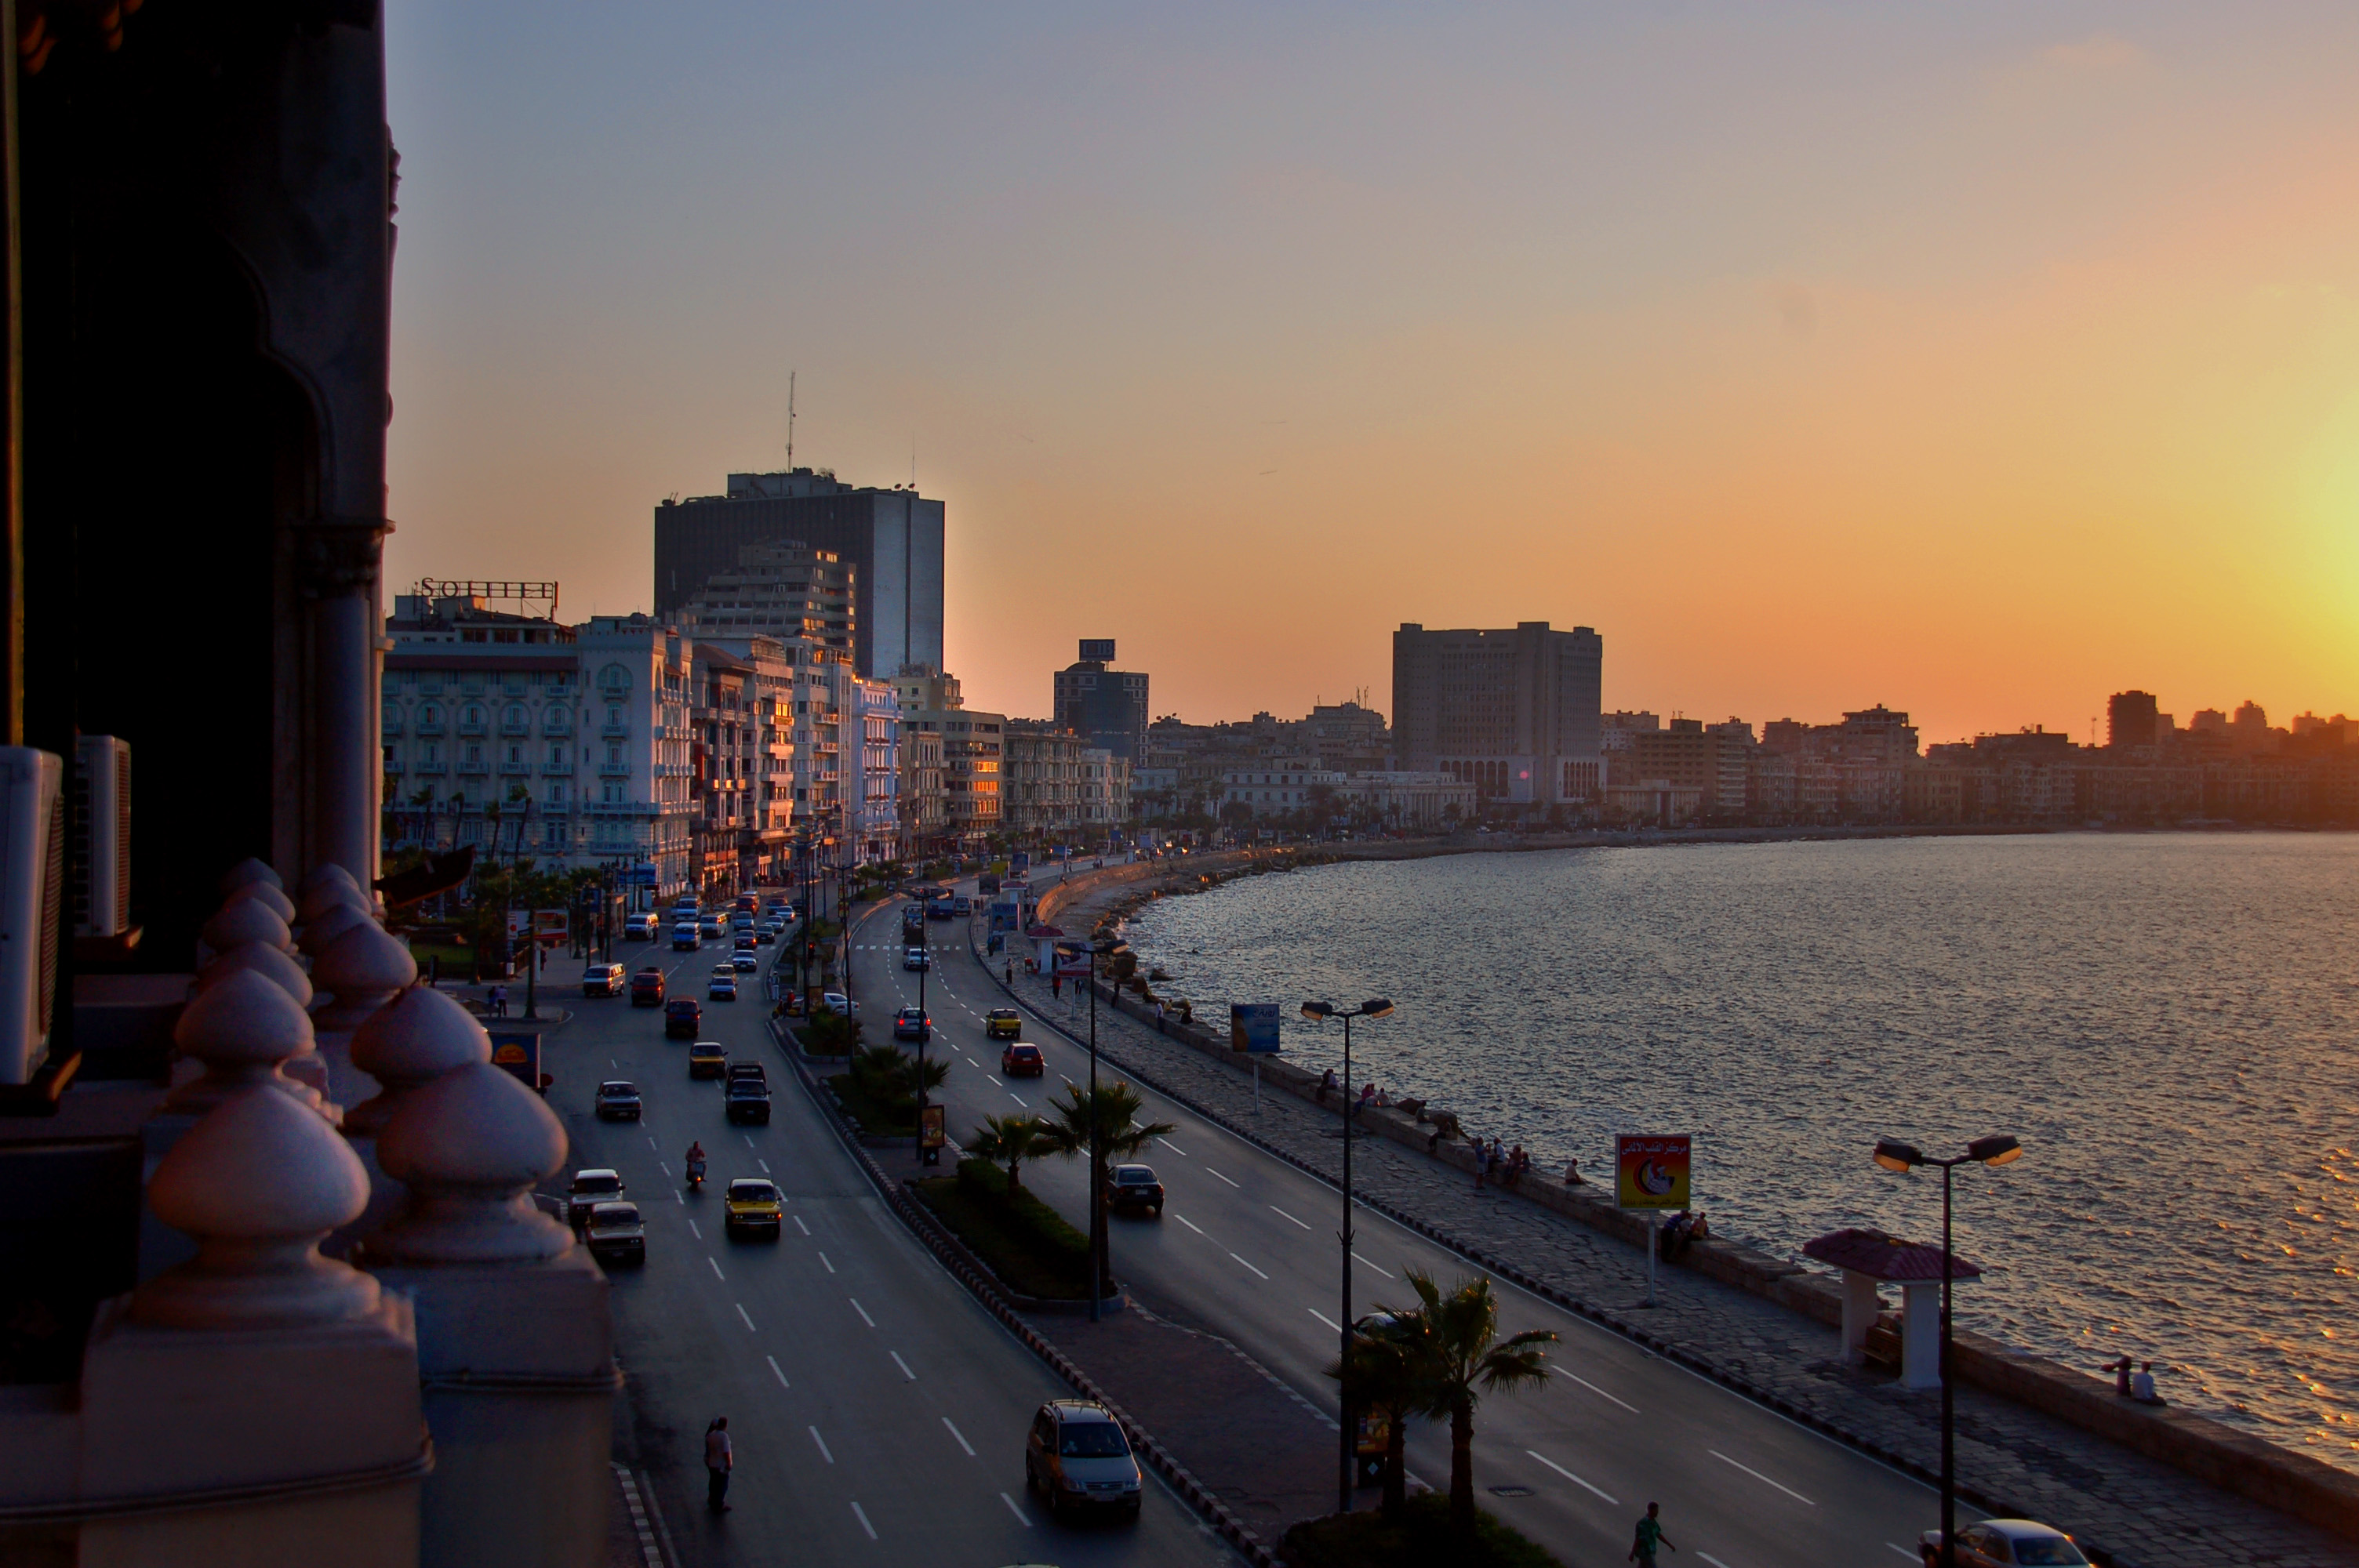 Alexandria Egypt  city images : Alexandria Egypt Wikipedia, the free encyclopedia